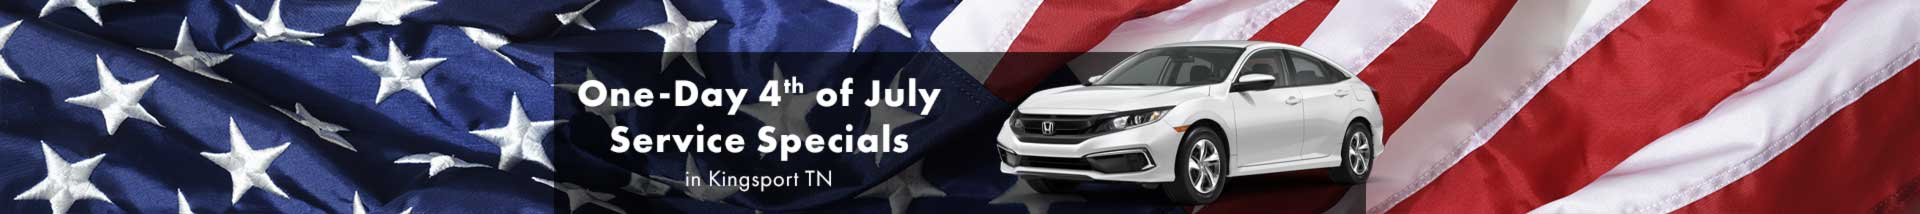 One-Day 4th of July Service Specials in Kingsport TN